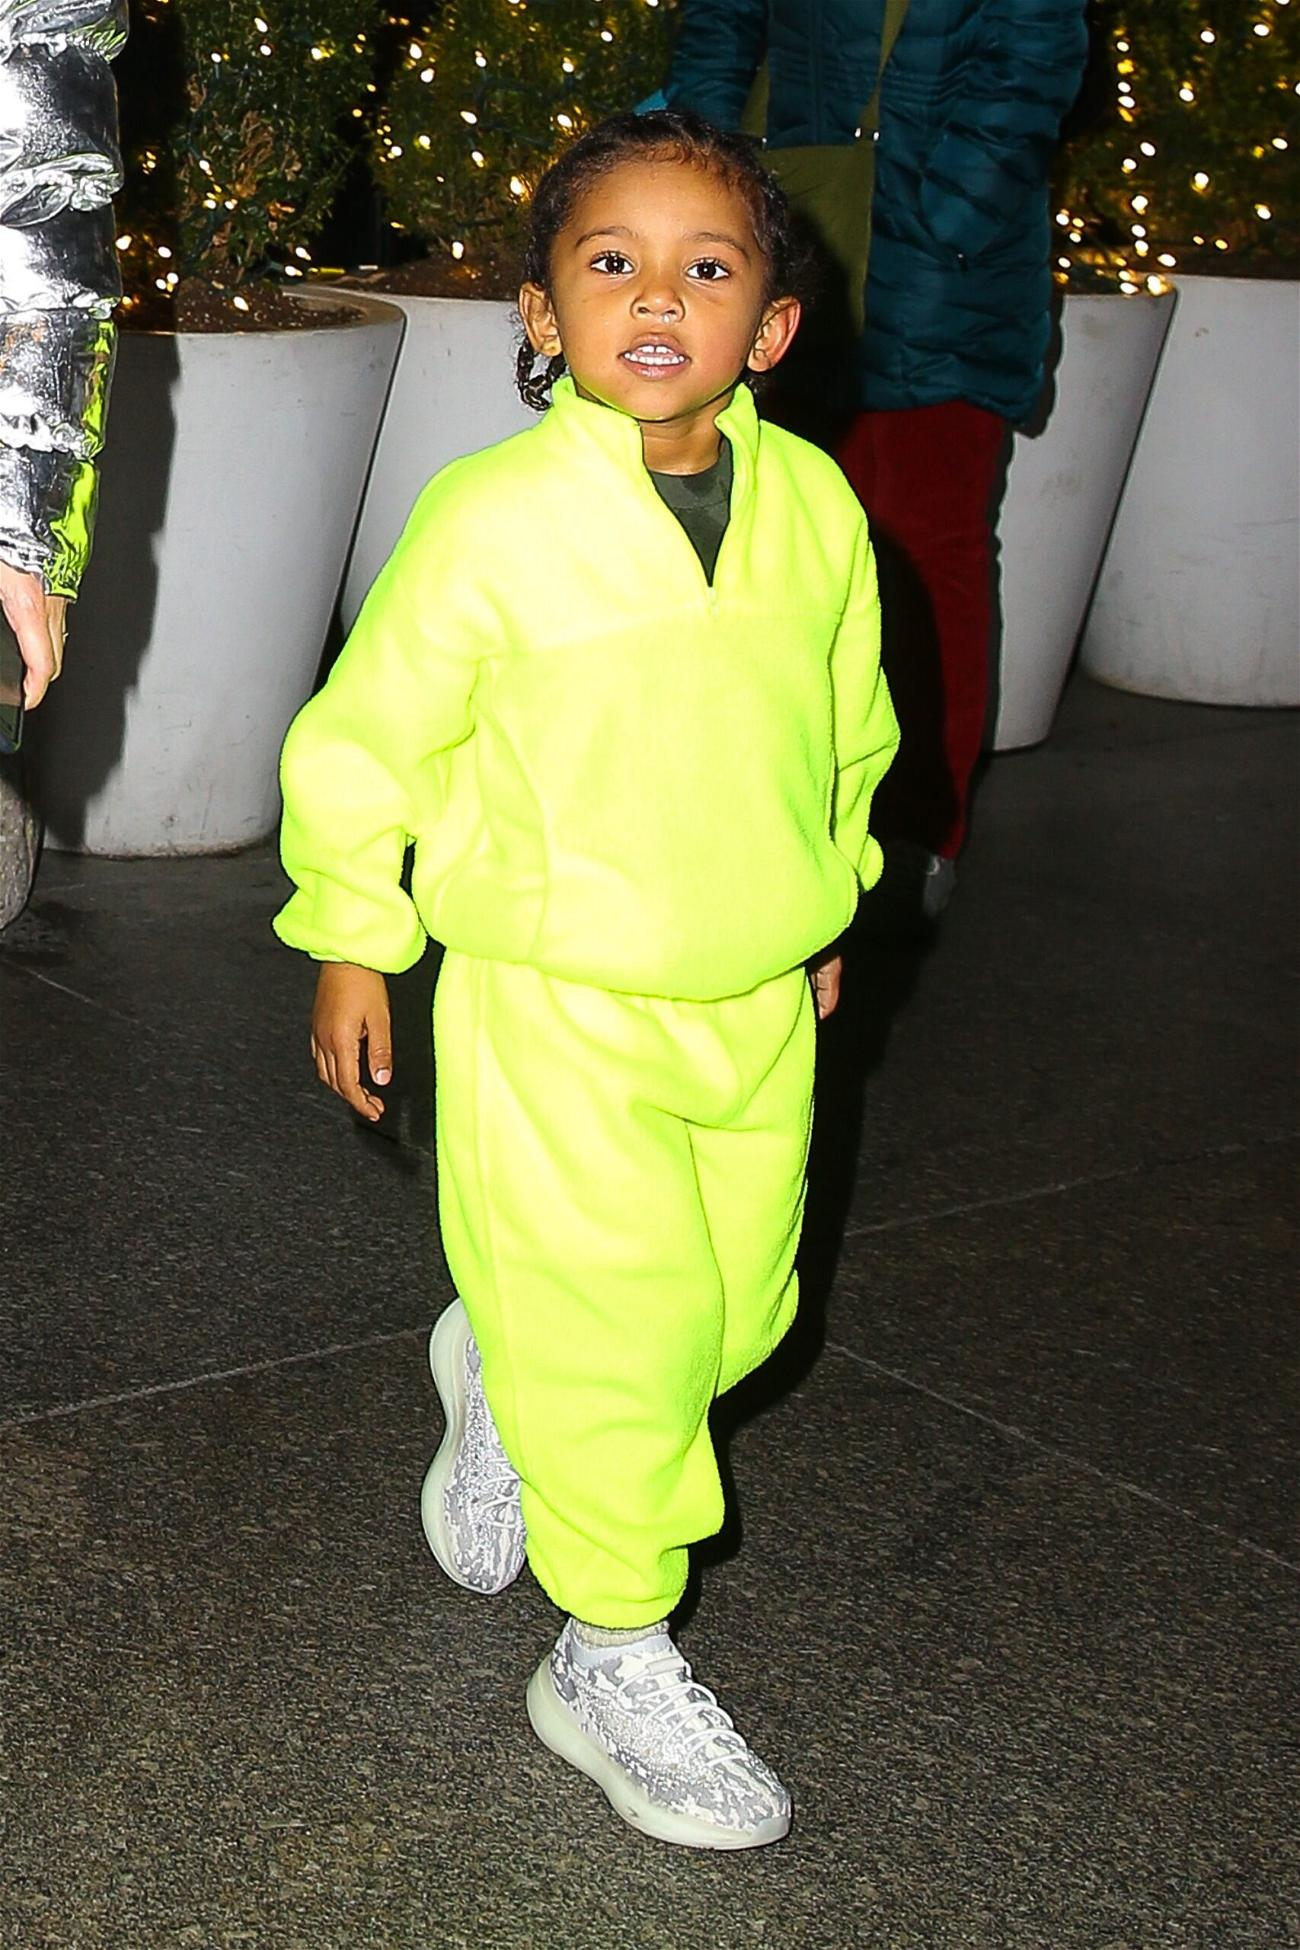 Kim Kardashian's Son Hospitalized After Breaking Arm In Several Places